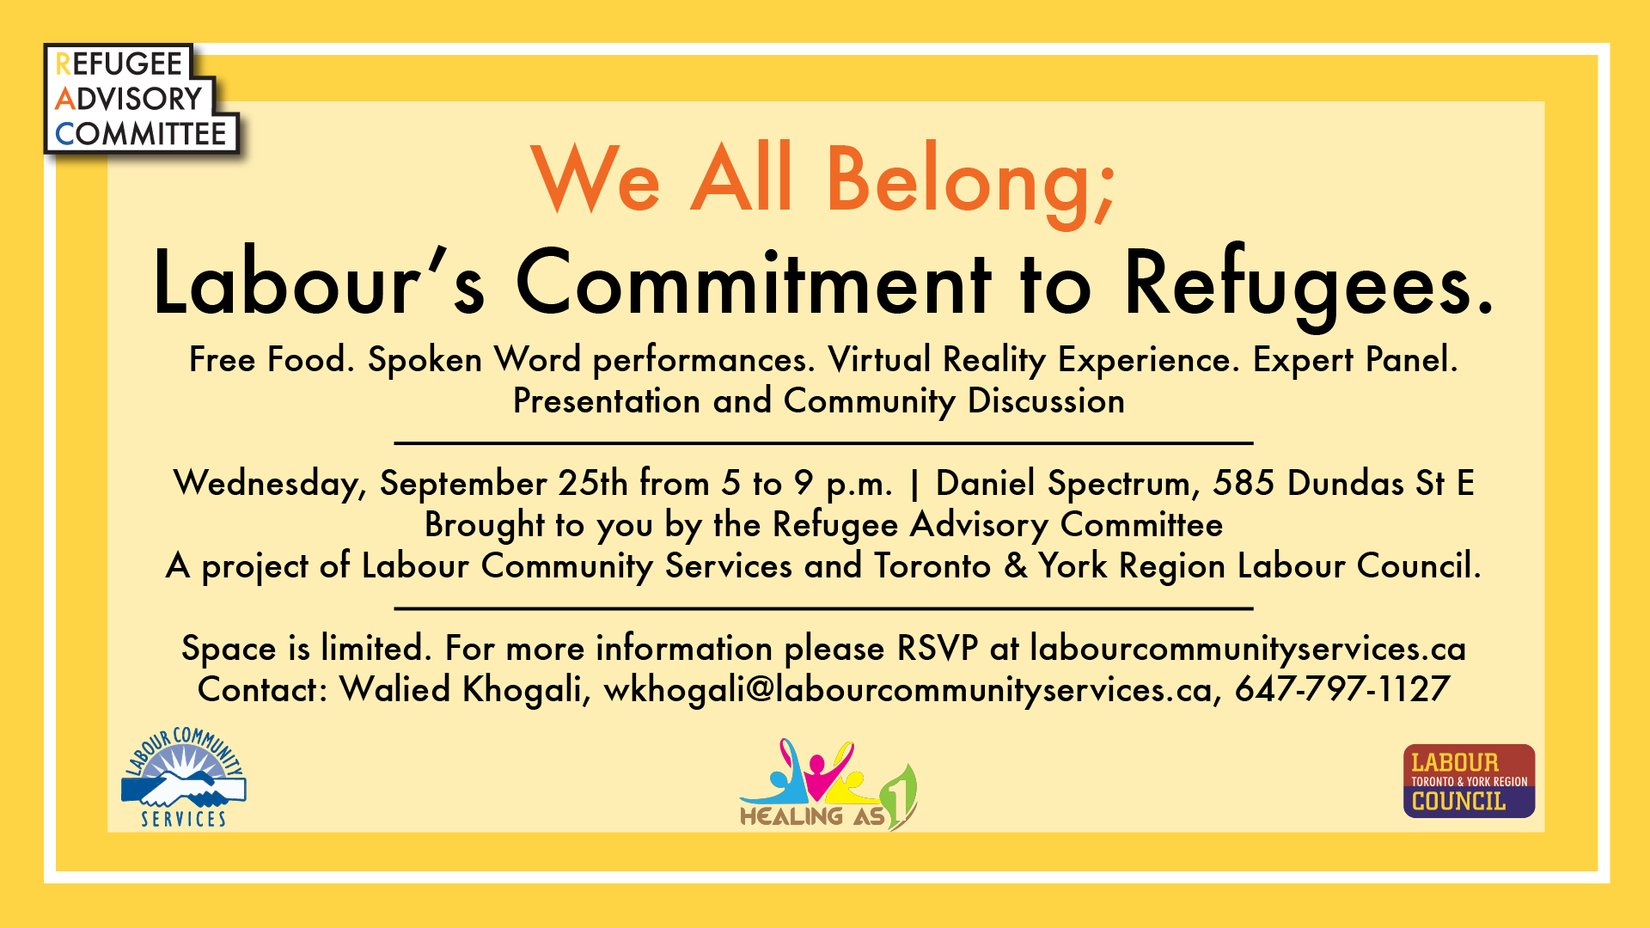 Web_banner-_We_All_belong_-_LCS_-_Sept_25th_2019.png